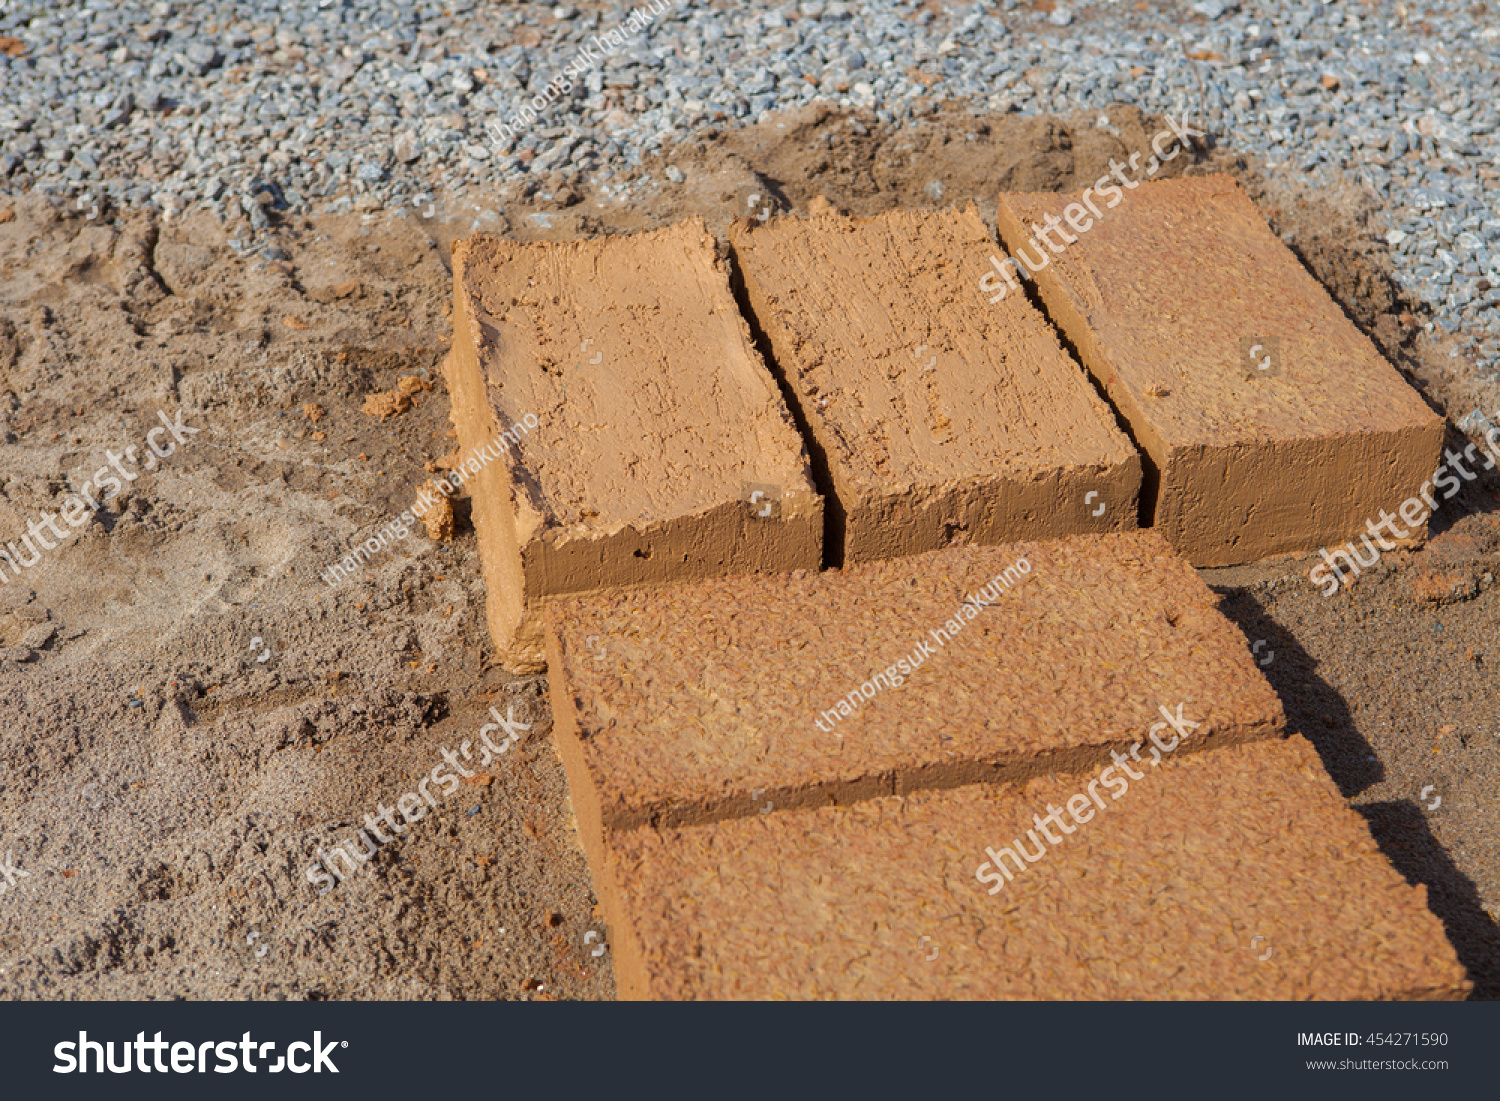 Bricks made clay soil build houses stock photo 454271590 for What is dirt composed of